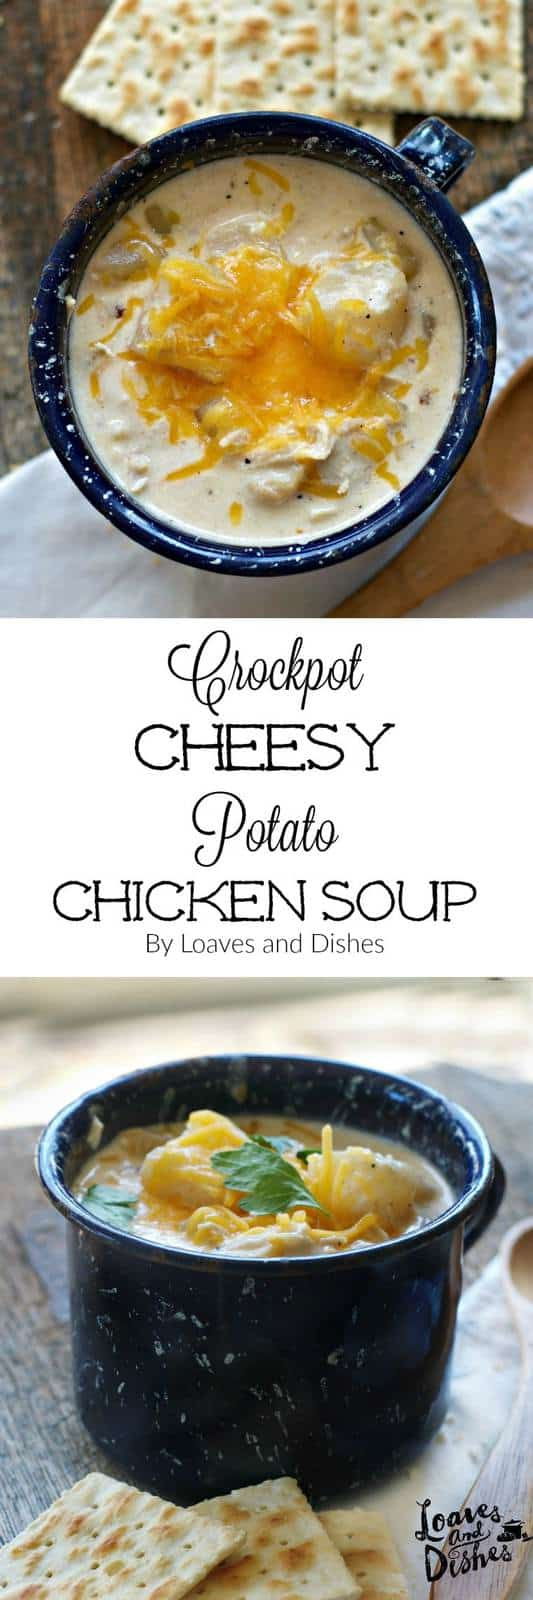 Super Easy - throw it all in the crockpot and the slow cooker has it ready when you arrive home meal. Hearty soup or chowder that is delicious and easy to put together. Great get well soup or cool day meal.